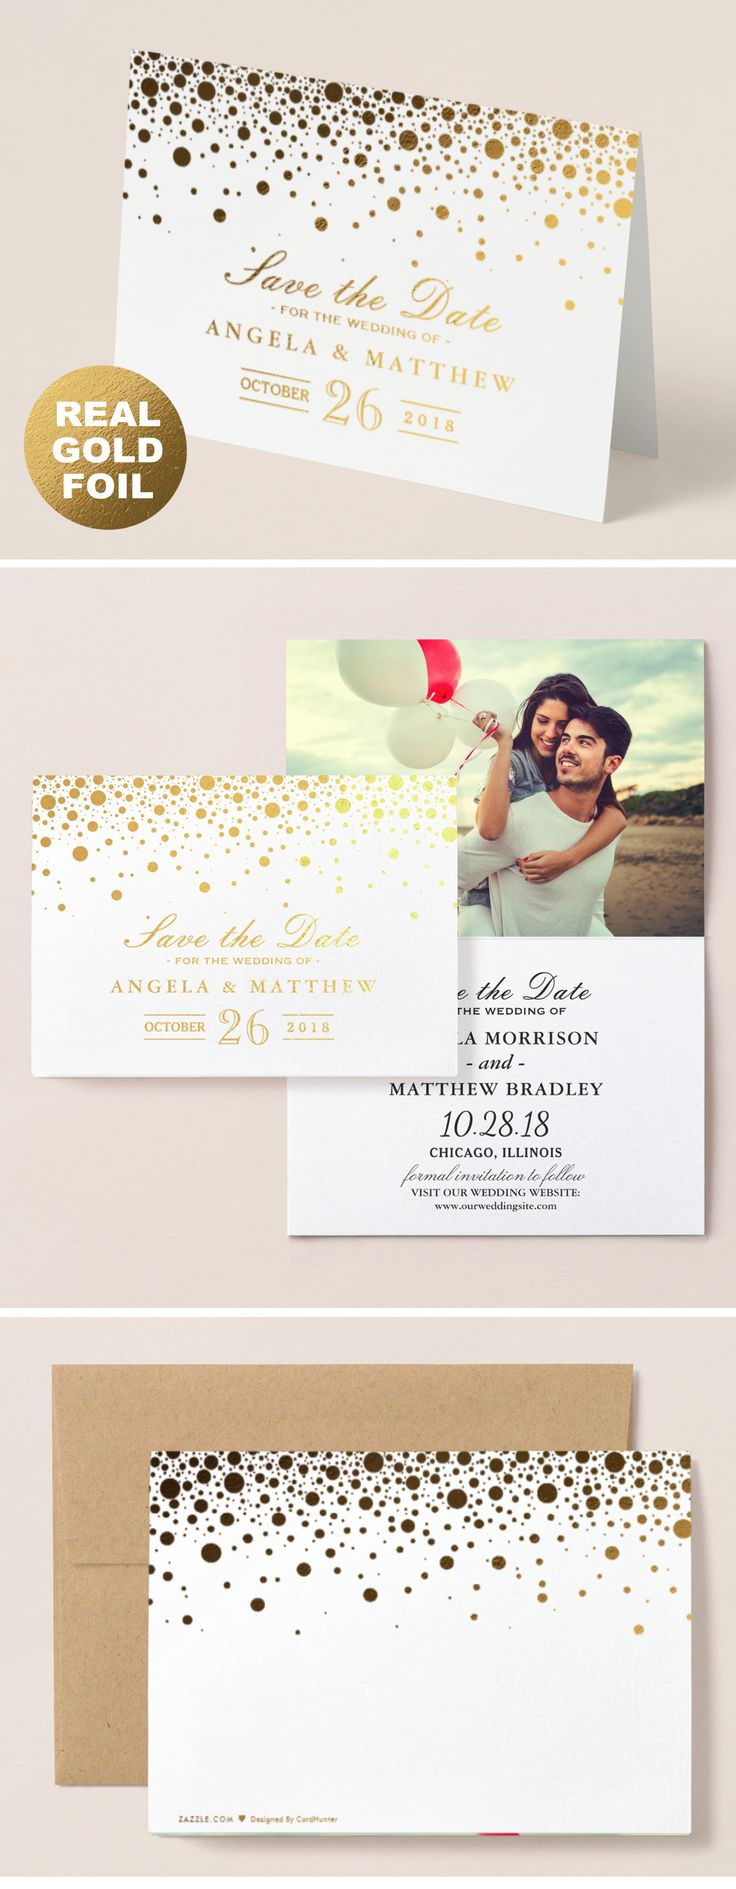 Best 6602 Save the Date Invitations images on Pinterest | Save the ...